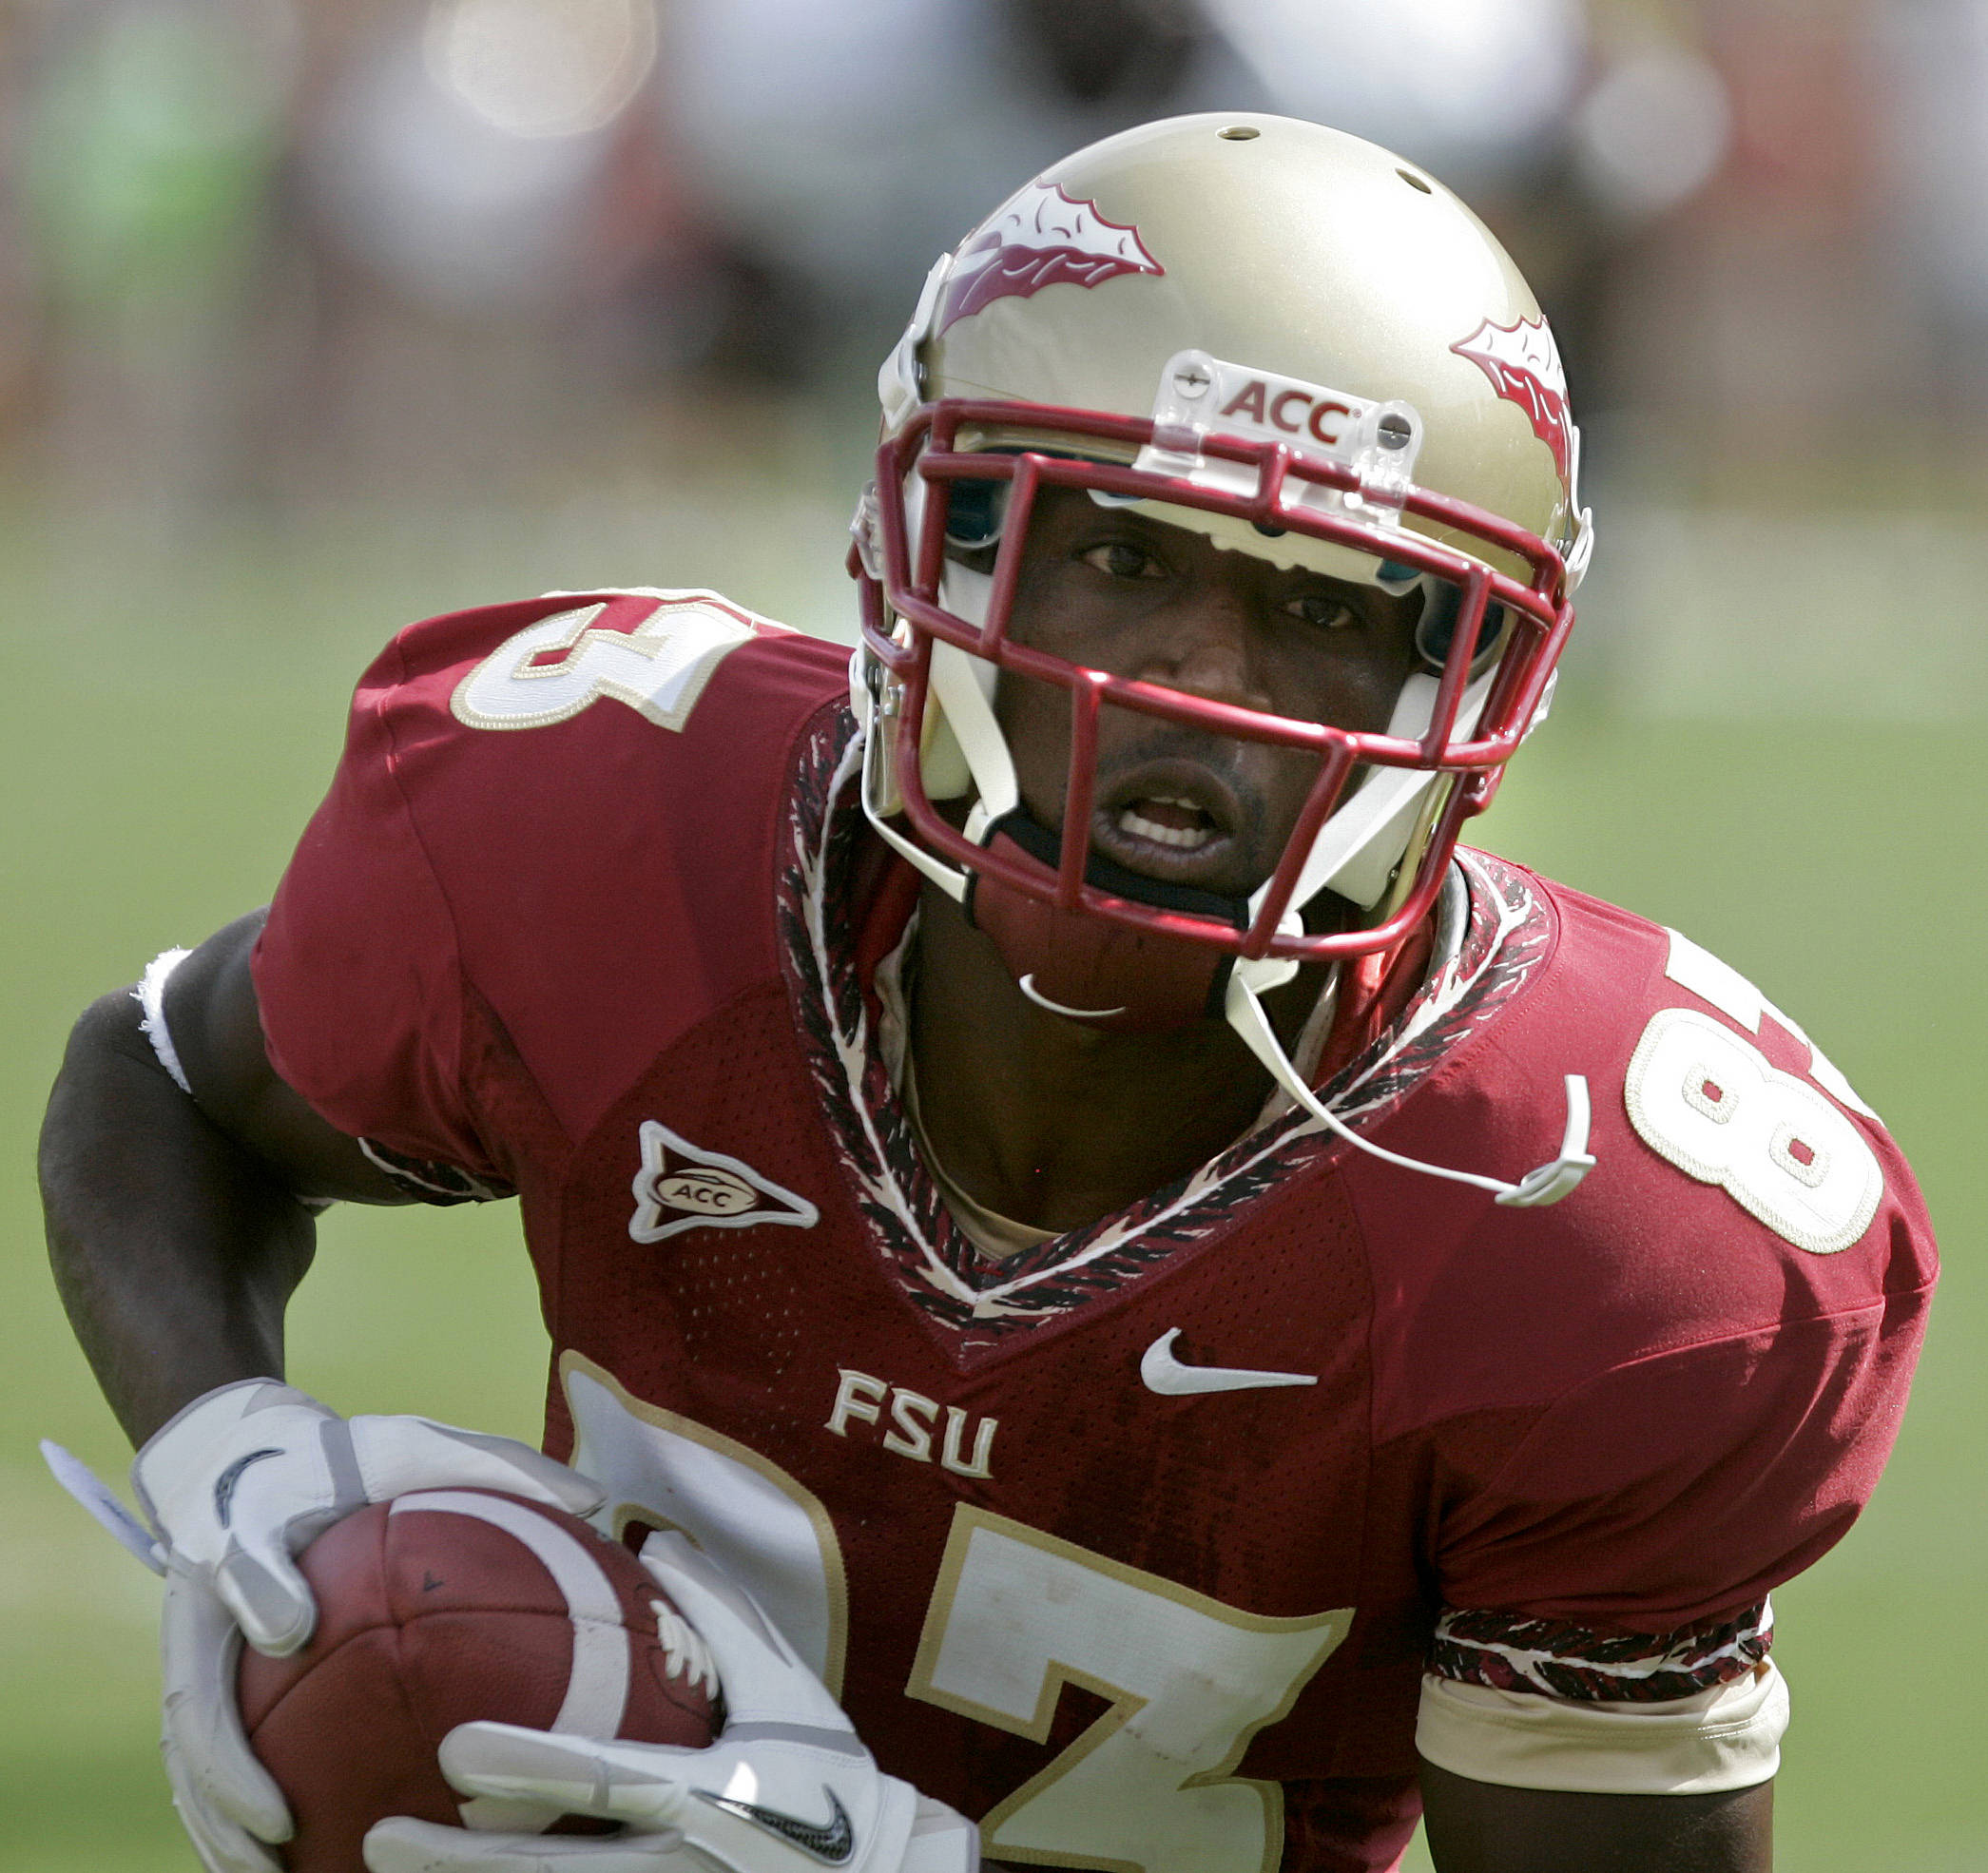 Florida State's Bert Reed heads towards the end zone after a pass reception to score the first touchdown against Louisiana-Monroe during the first quarter of an NCAA college football game, Saturday, Sept. 3, 2011, in Tallahassee, Fla. (AP Photo/Steve Cannon)